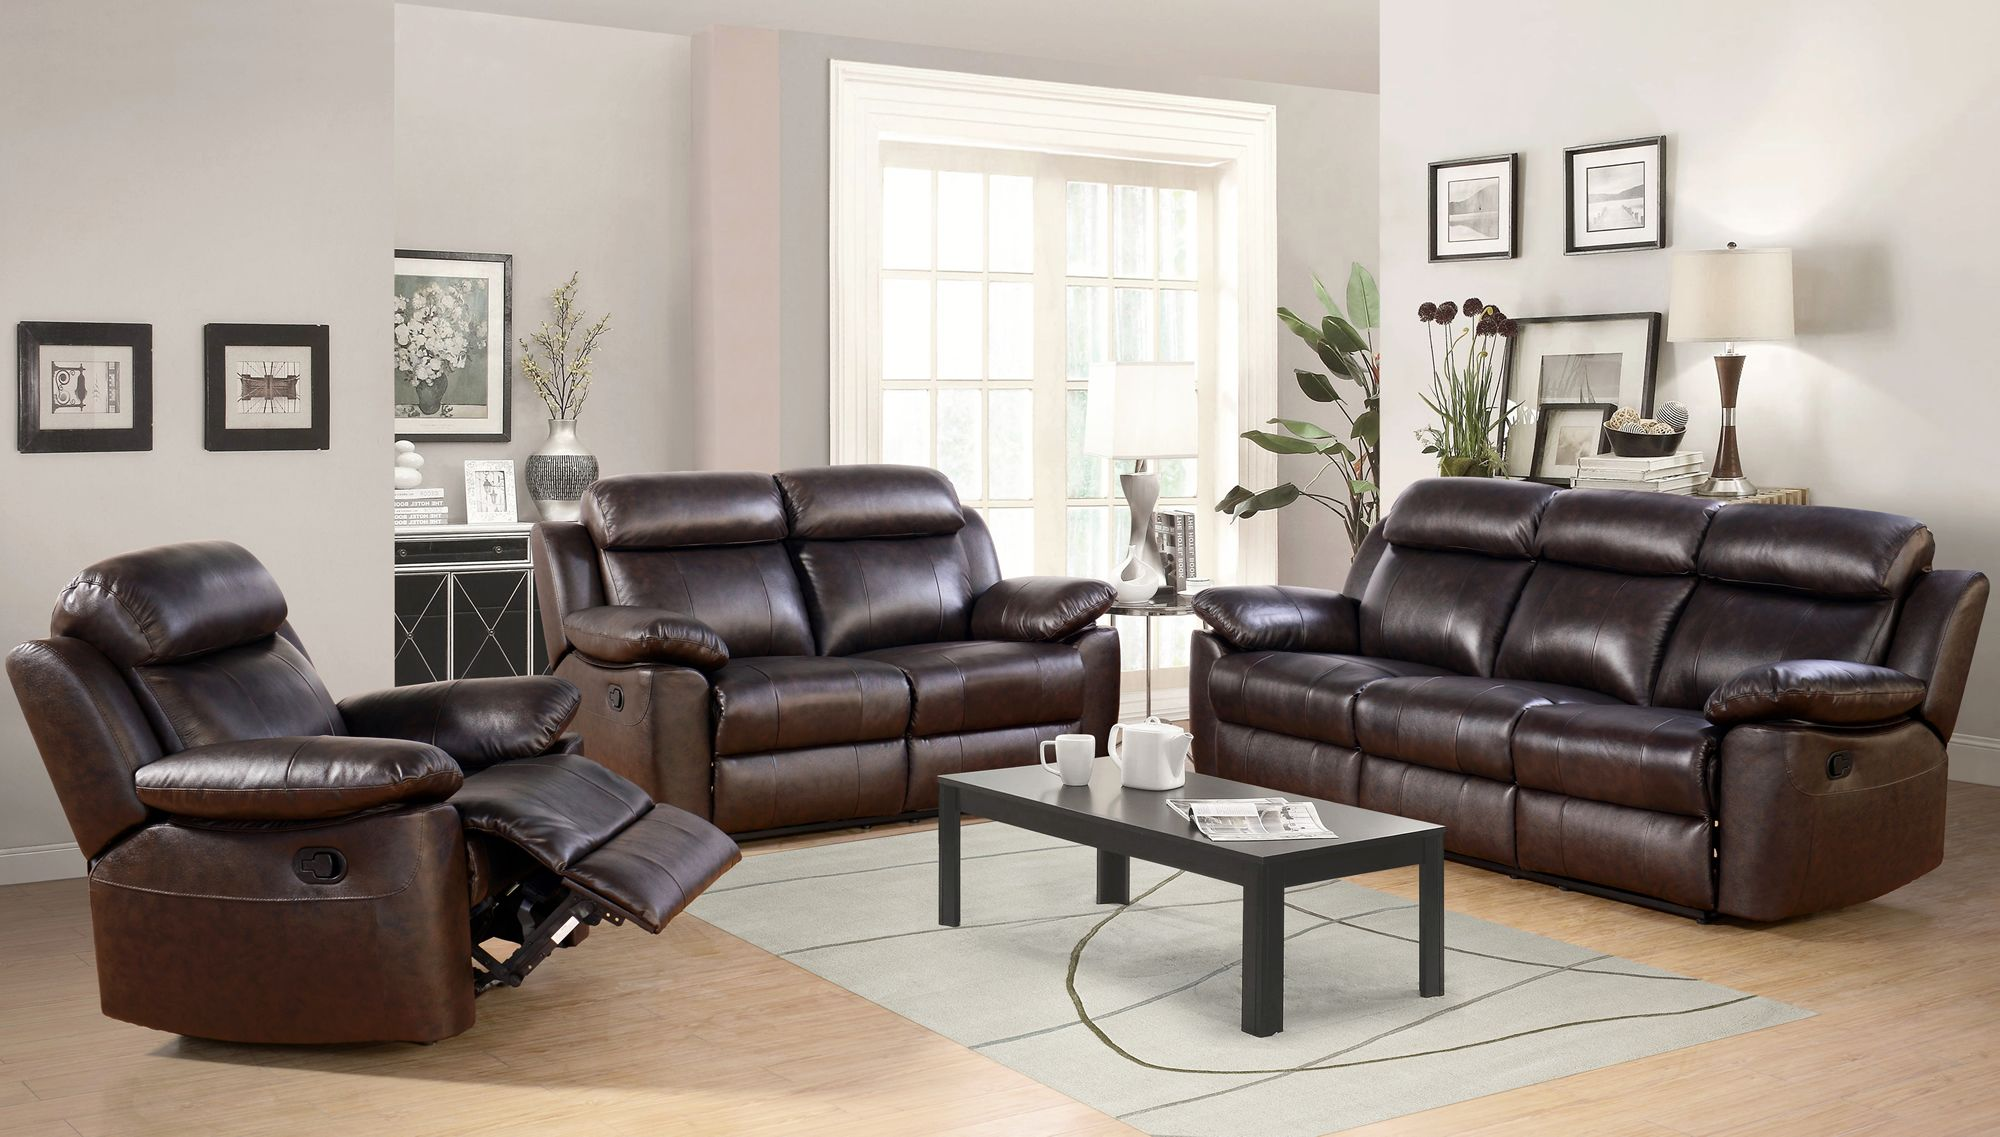 Abbyson Living Braylen 3 Pc Brown Leather Reclining Set